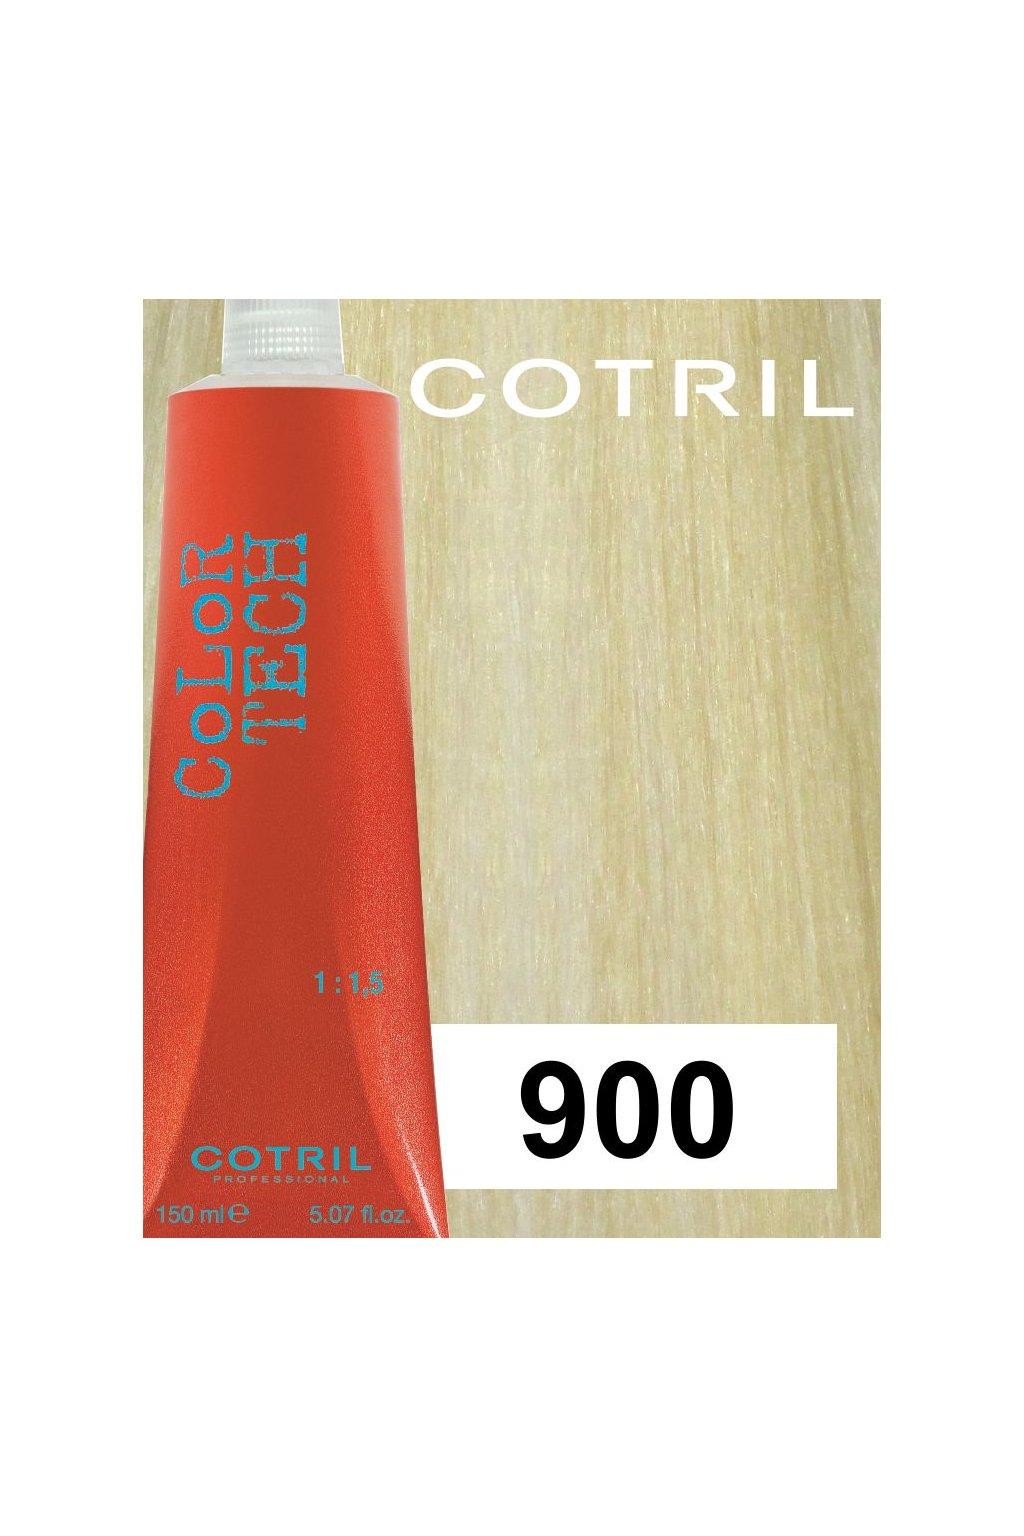 900 ct cotril